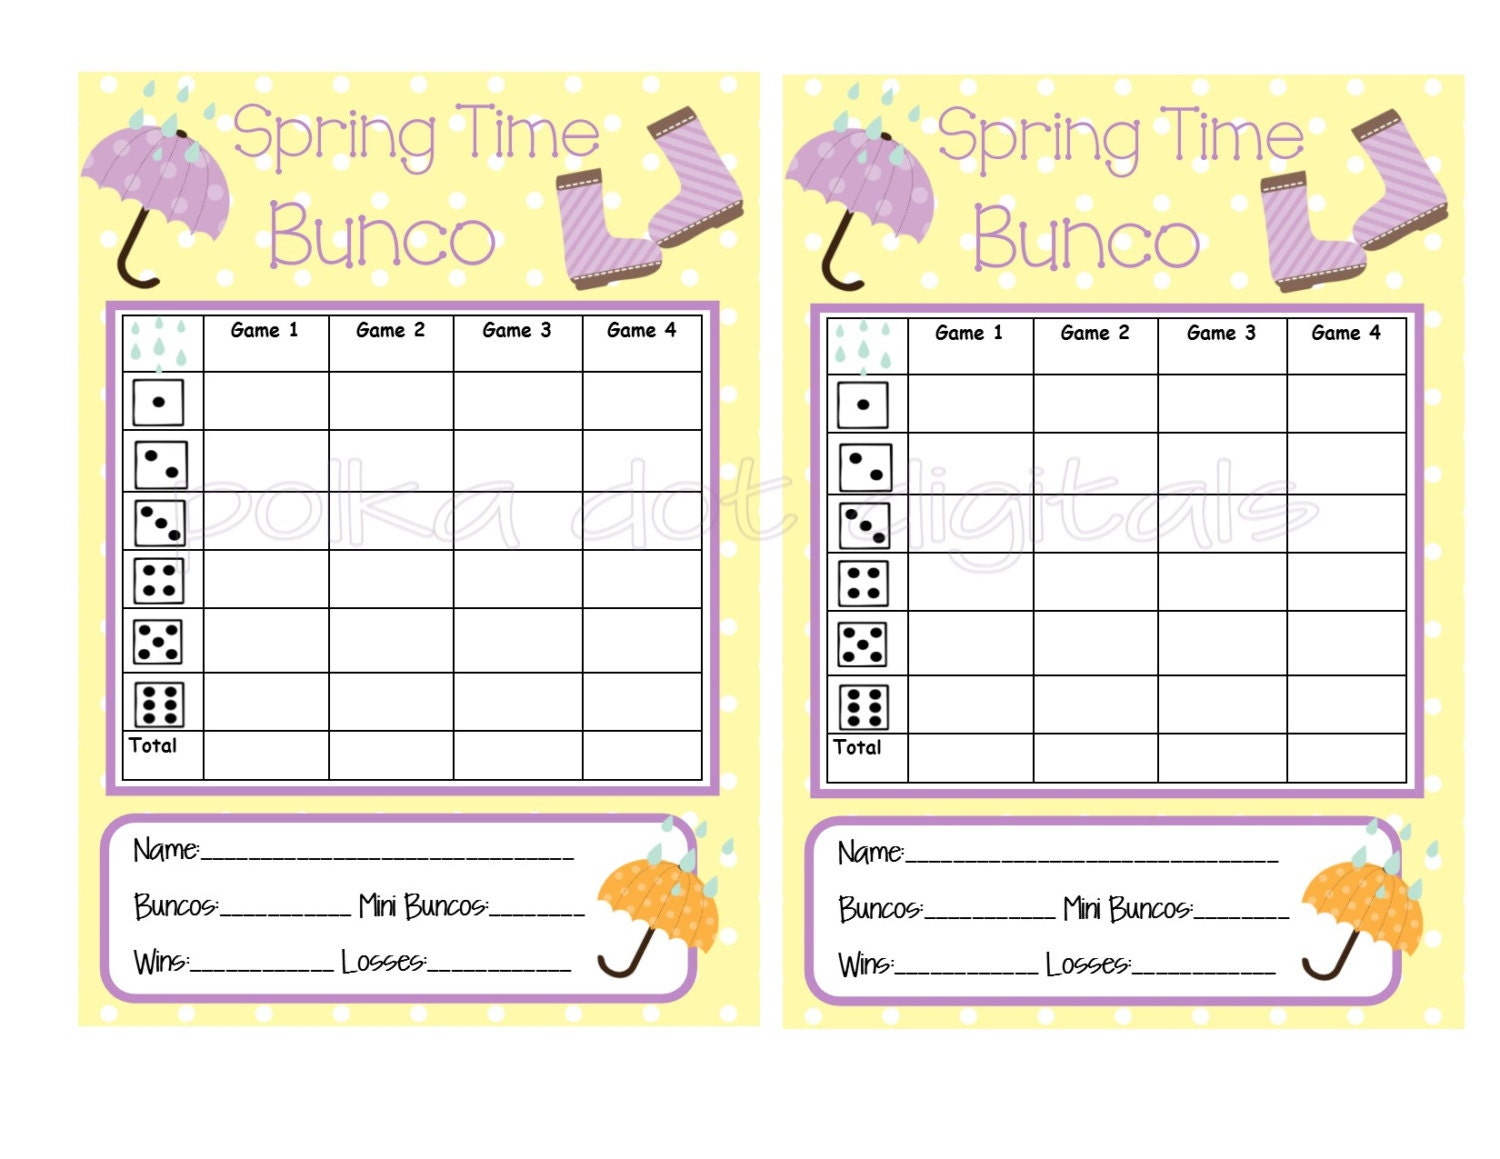 graphic relating to Printable Bunco Sheets titled Bunco Sheets Pics - Opposite Look